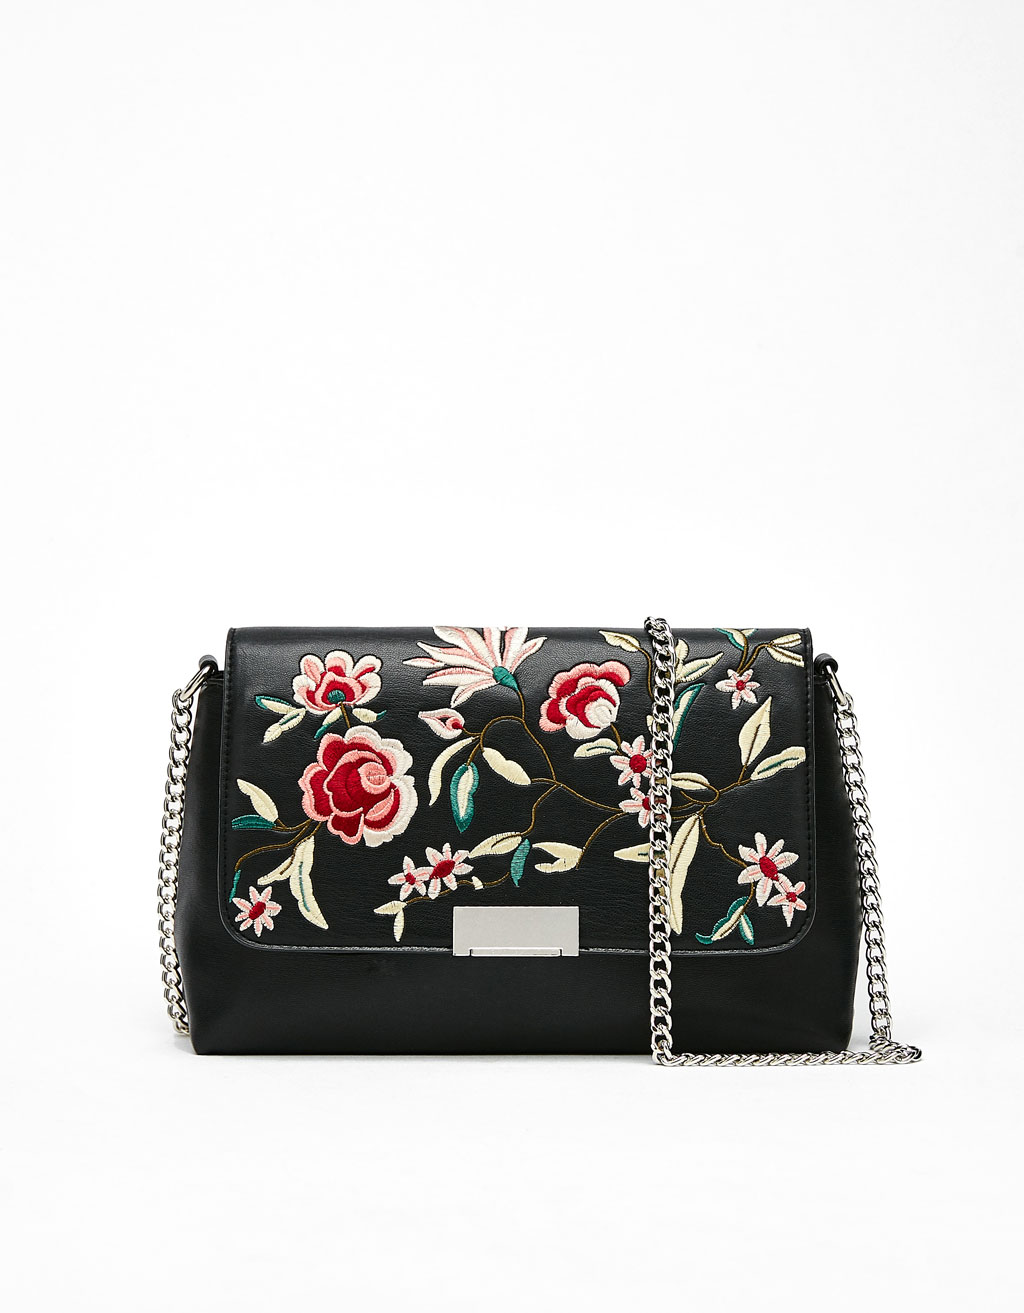 Bag with floral embroidery